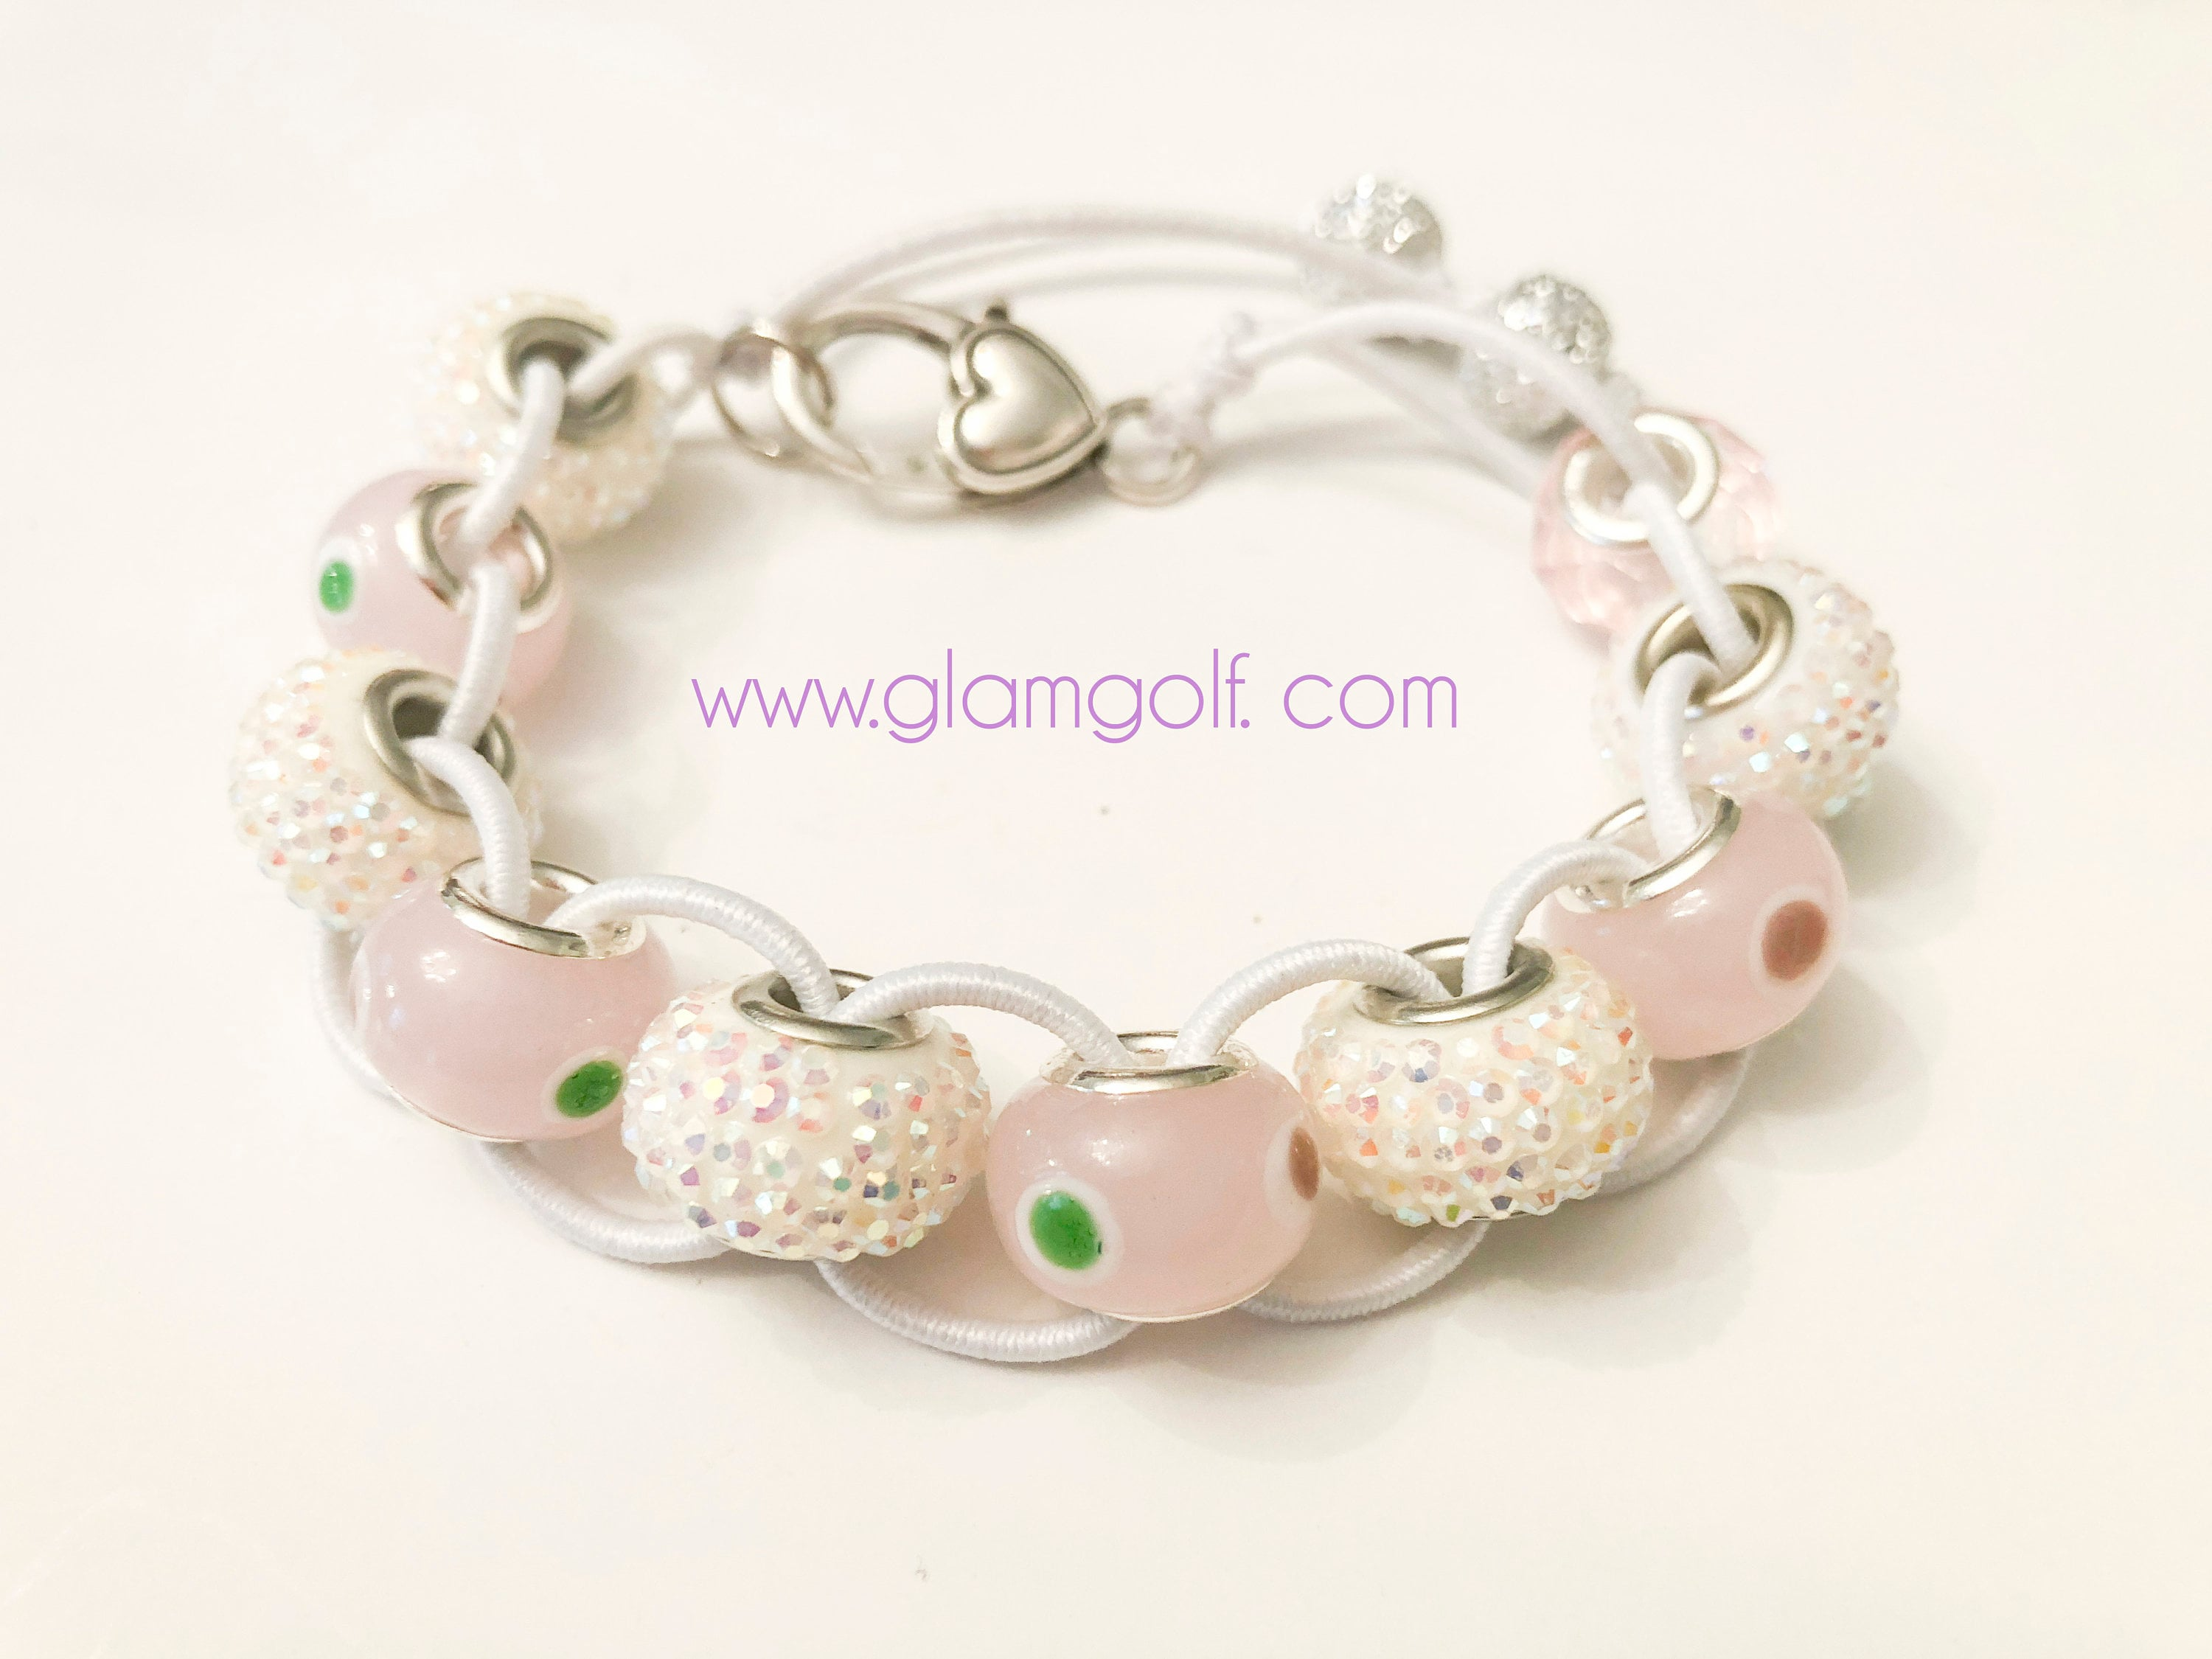 wht products aeravida bracelet bs lai bracelets was crystal a and classy motif flower by sophisticated base thailand artisan white metal in pearl features details of handmade this made proficient stone